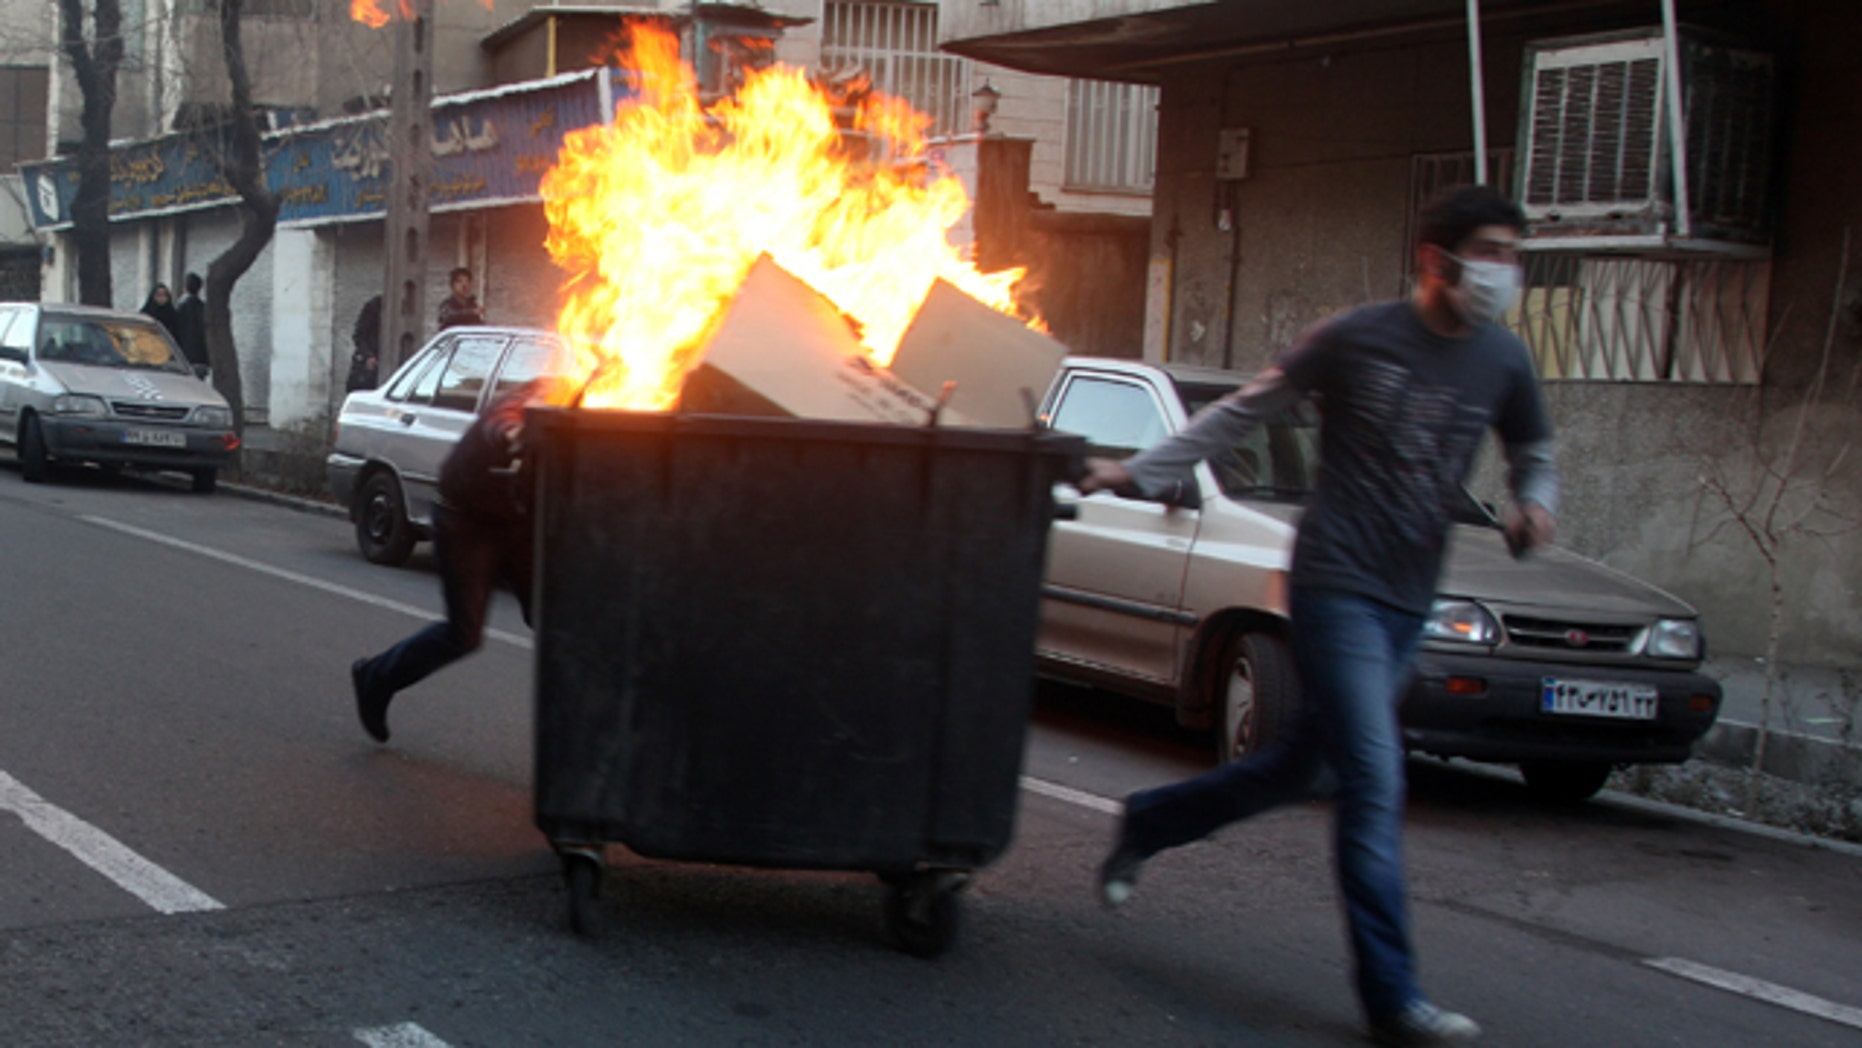 Feb. 14: This photo, taken by an individual not employed by the Associated Press and obtained by the AP outside Iran, shows Iranian protestors moving a garbage can which is set on fire during an anti-government protest in Tehran, Iran.